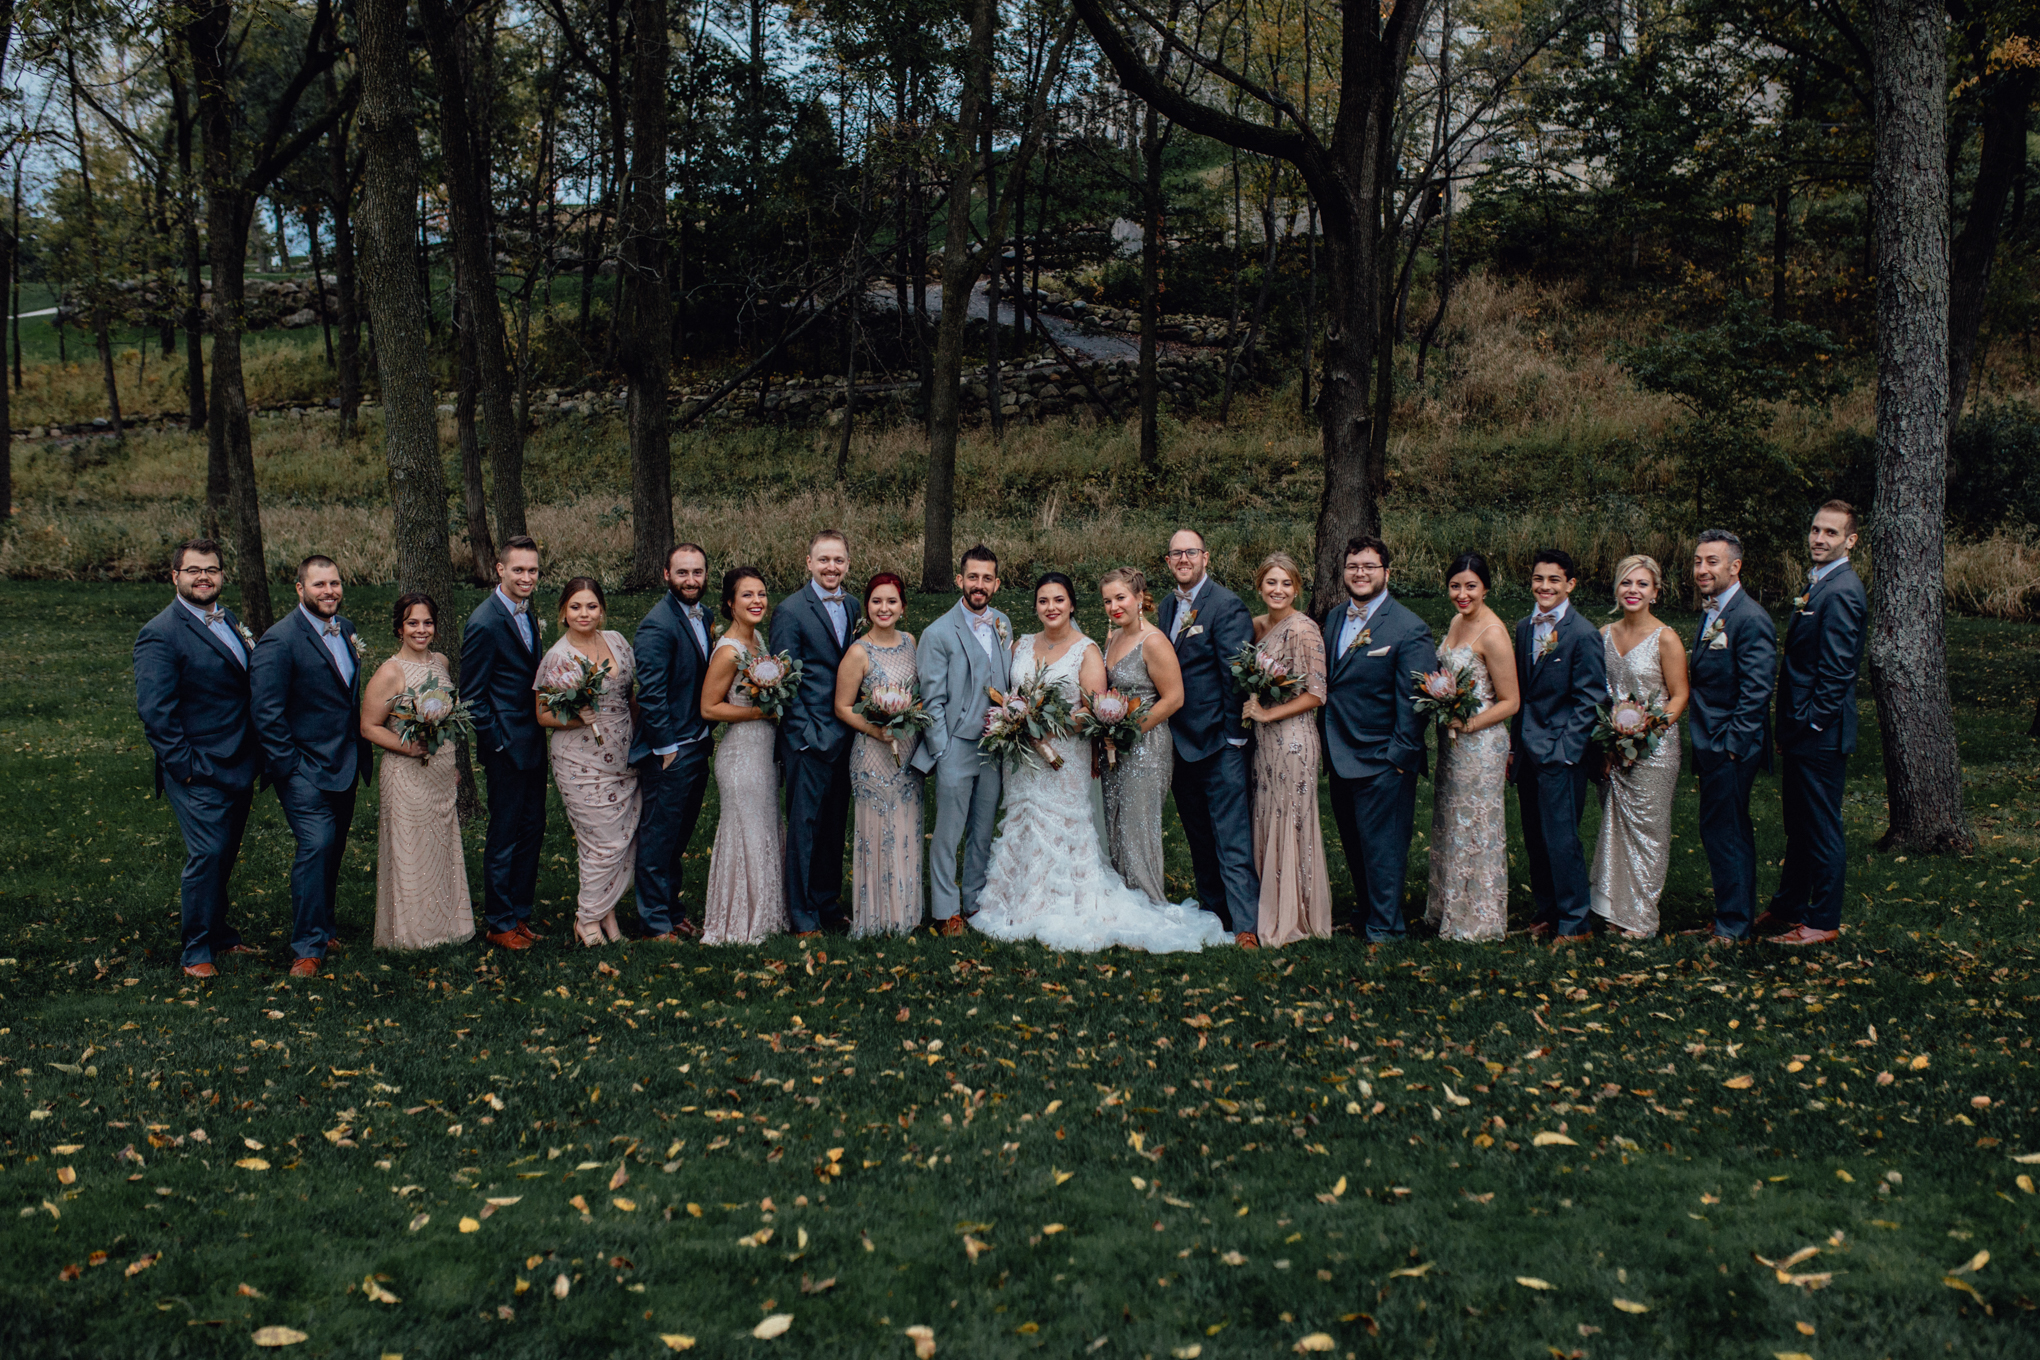 bridesmaids-and-groomsmen-smiling-in-grass.jpg